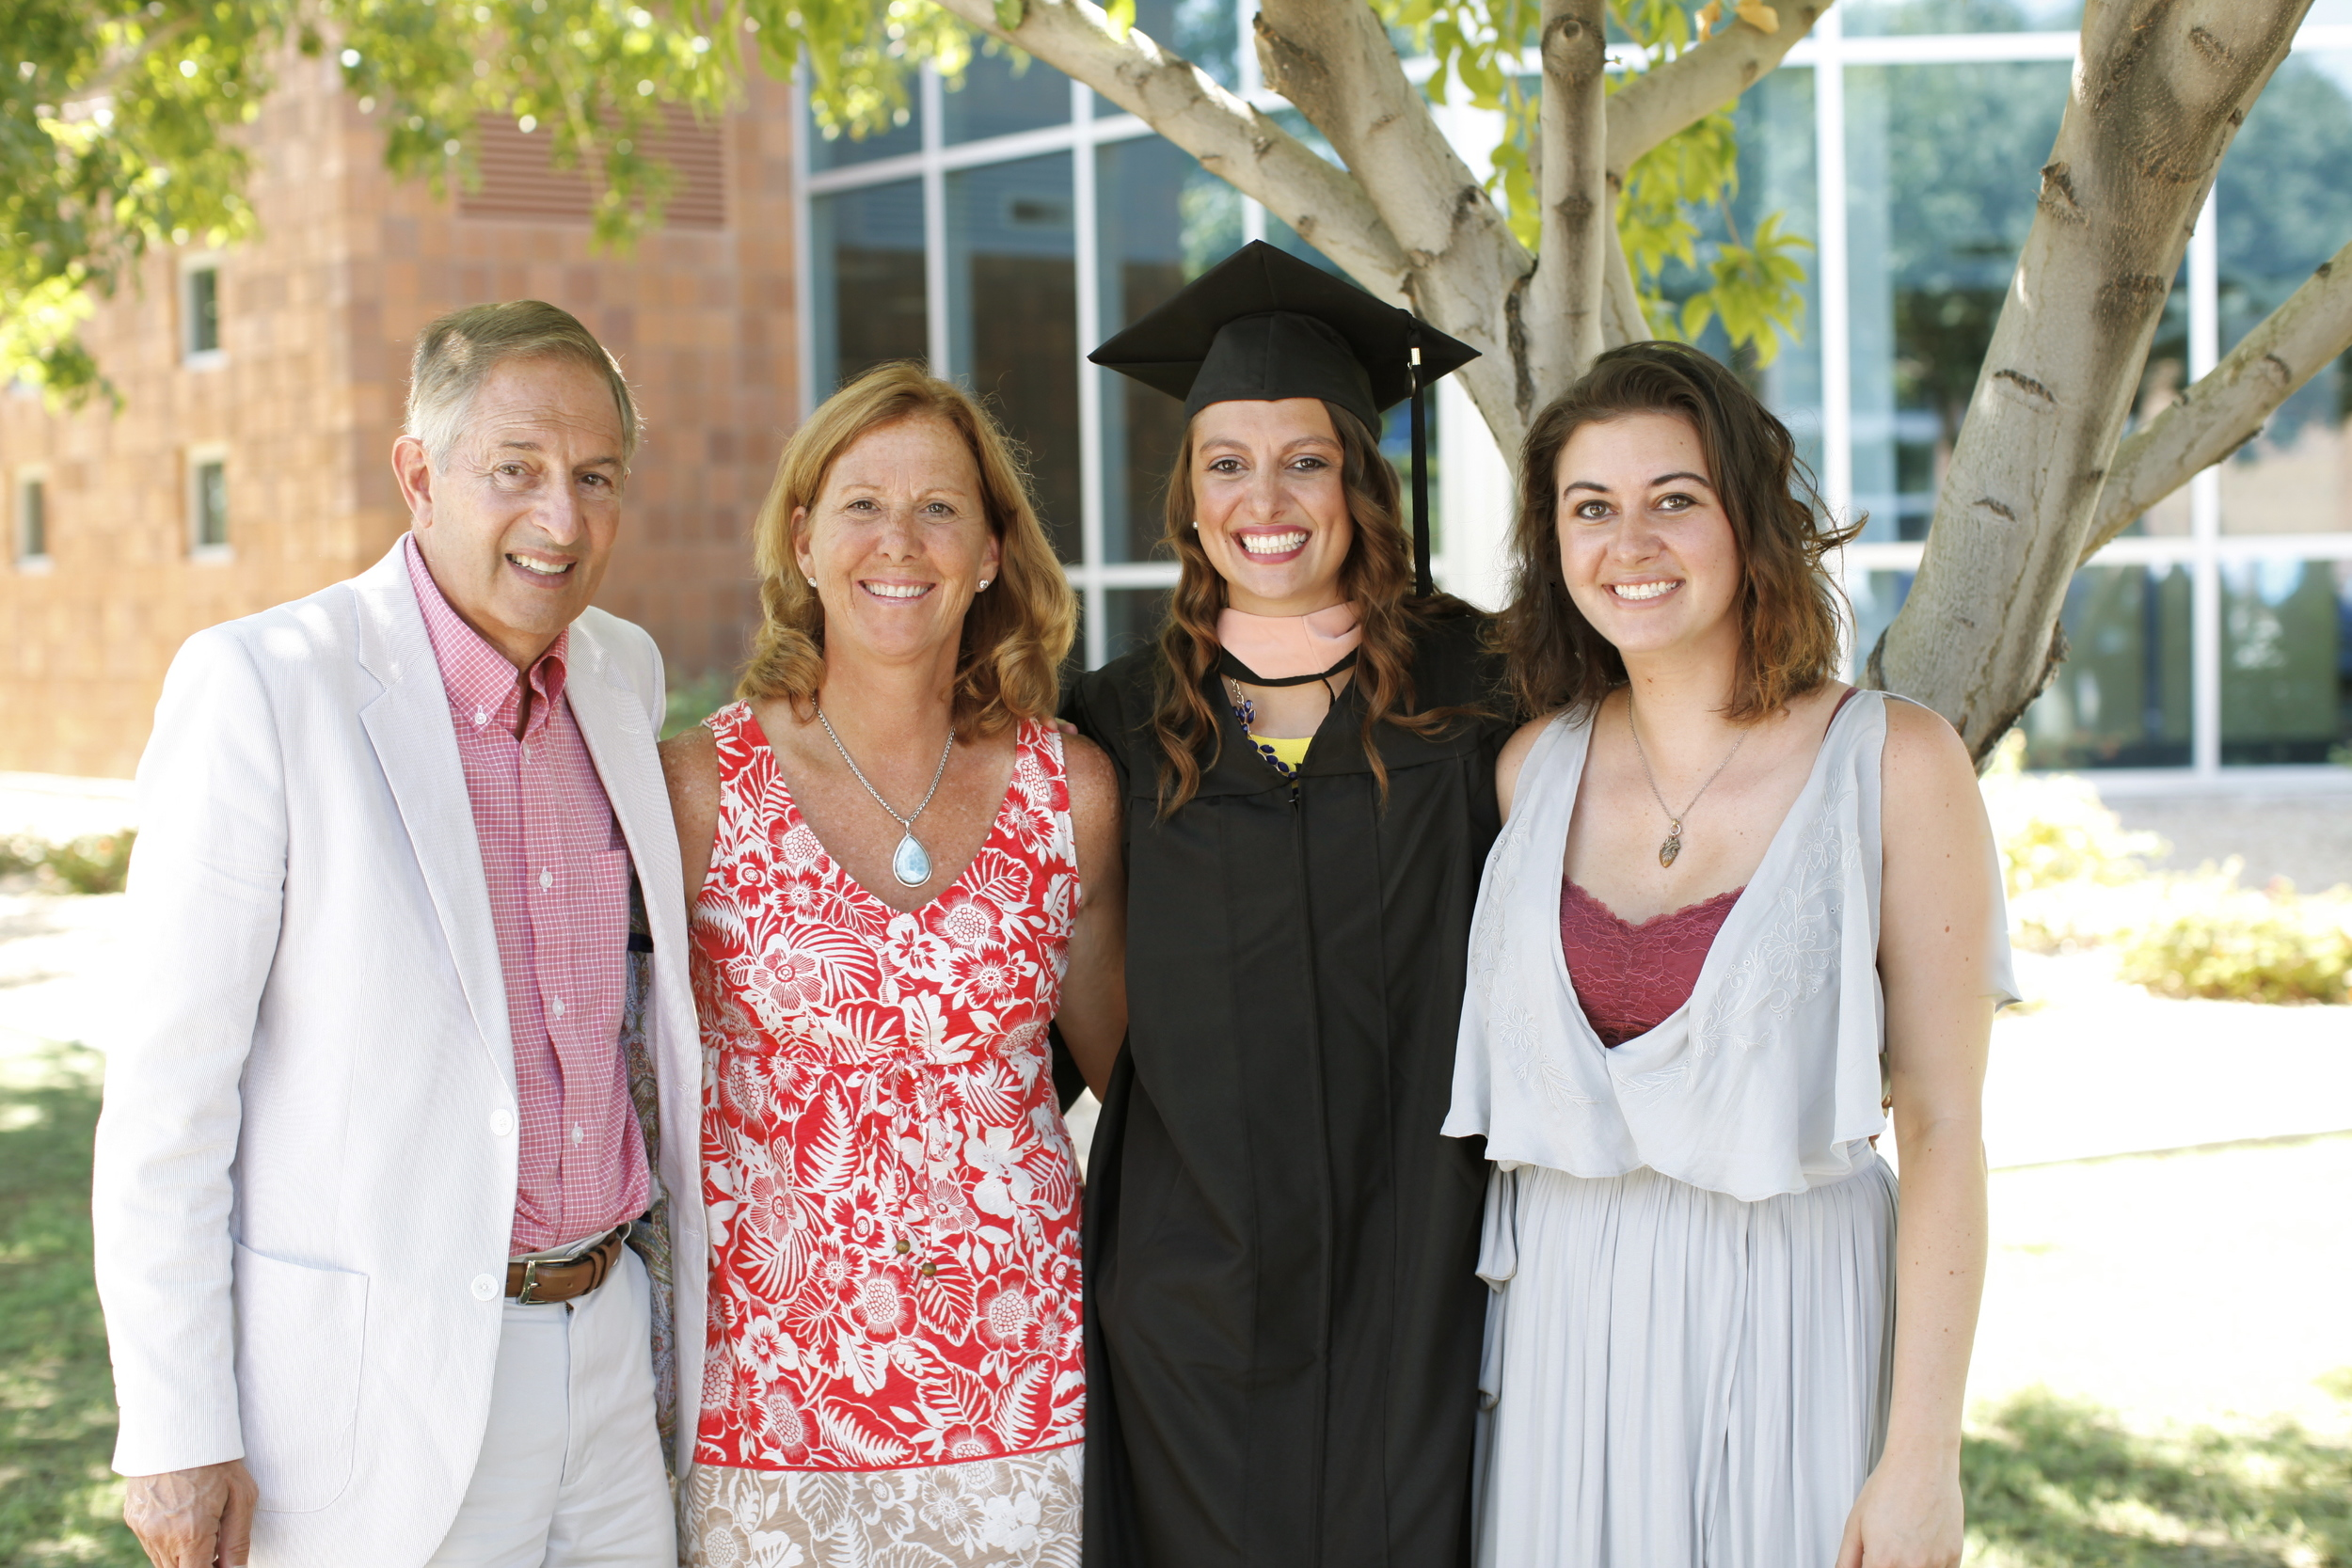 Jenny's sister & her boyfriend graduate their Occupational Therapy master's program in Arizona